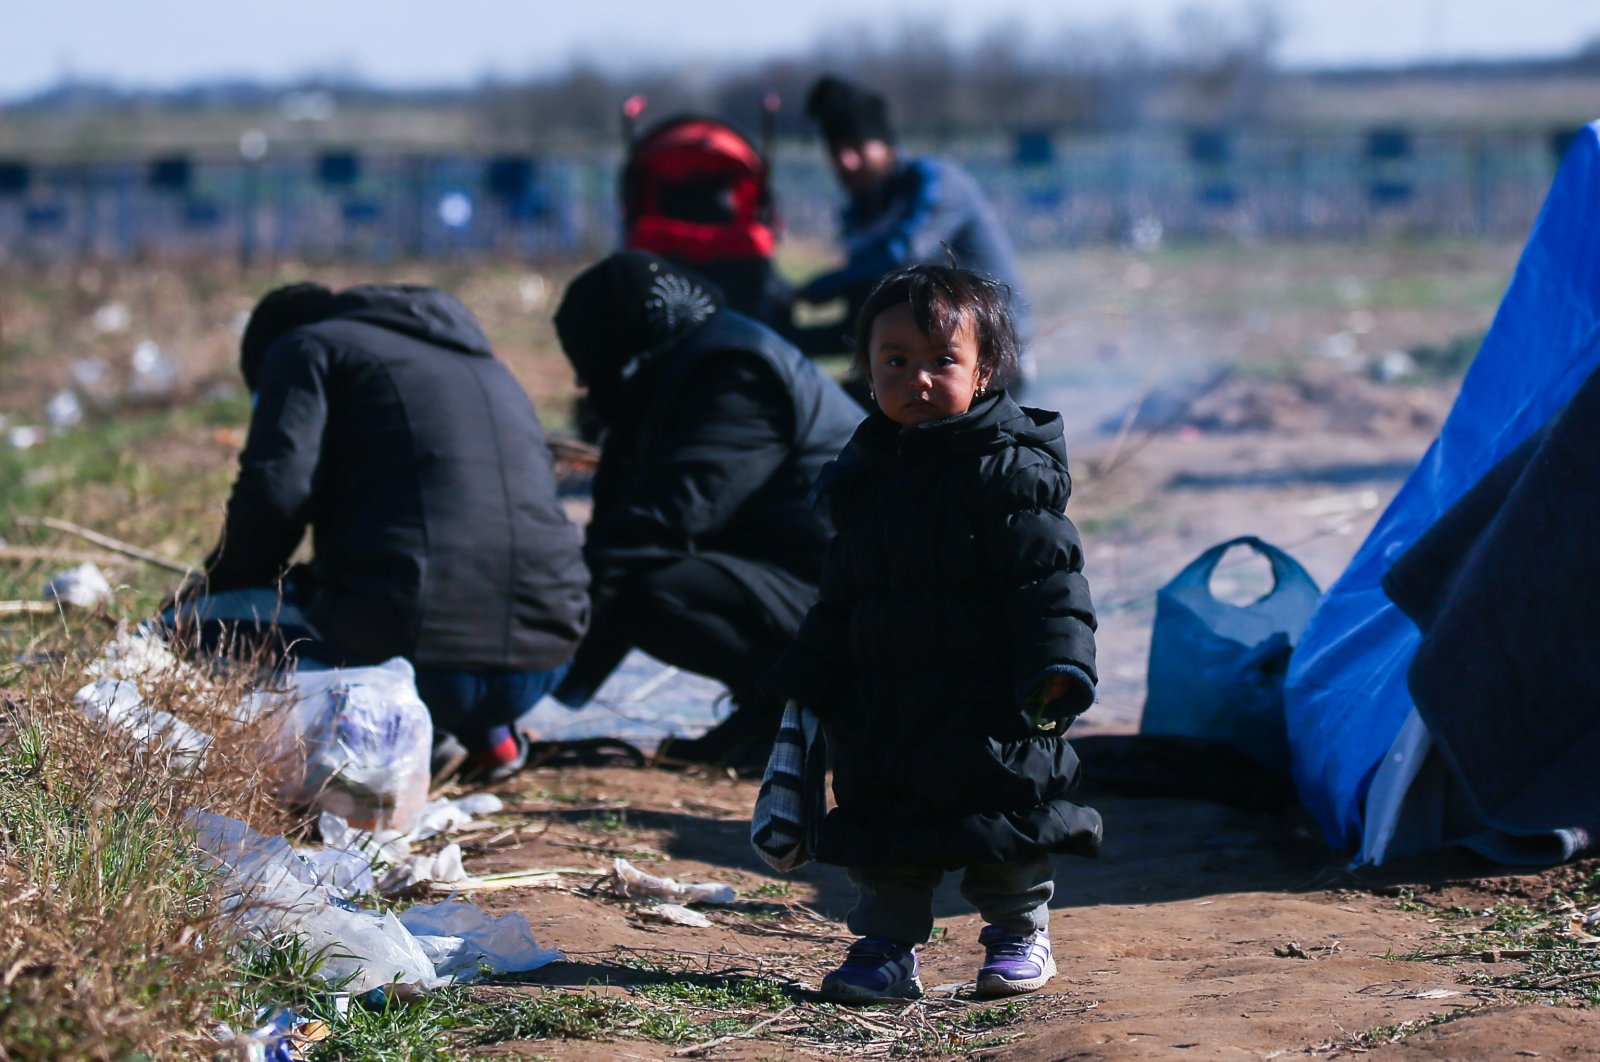 A child is seen in the area near the Turkish-Greek border where asylum-seekers and migrants have been waiting for more than two weeks to enter Europe, March 16, 2020. (AA Photo)